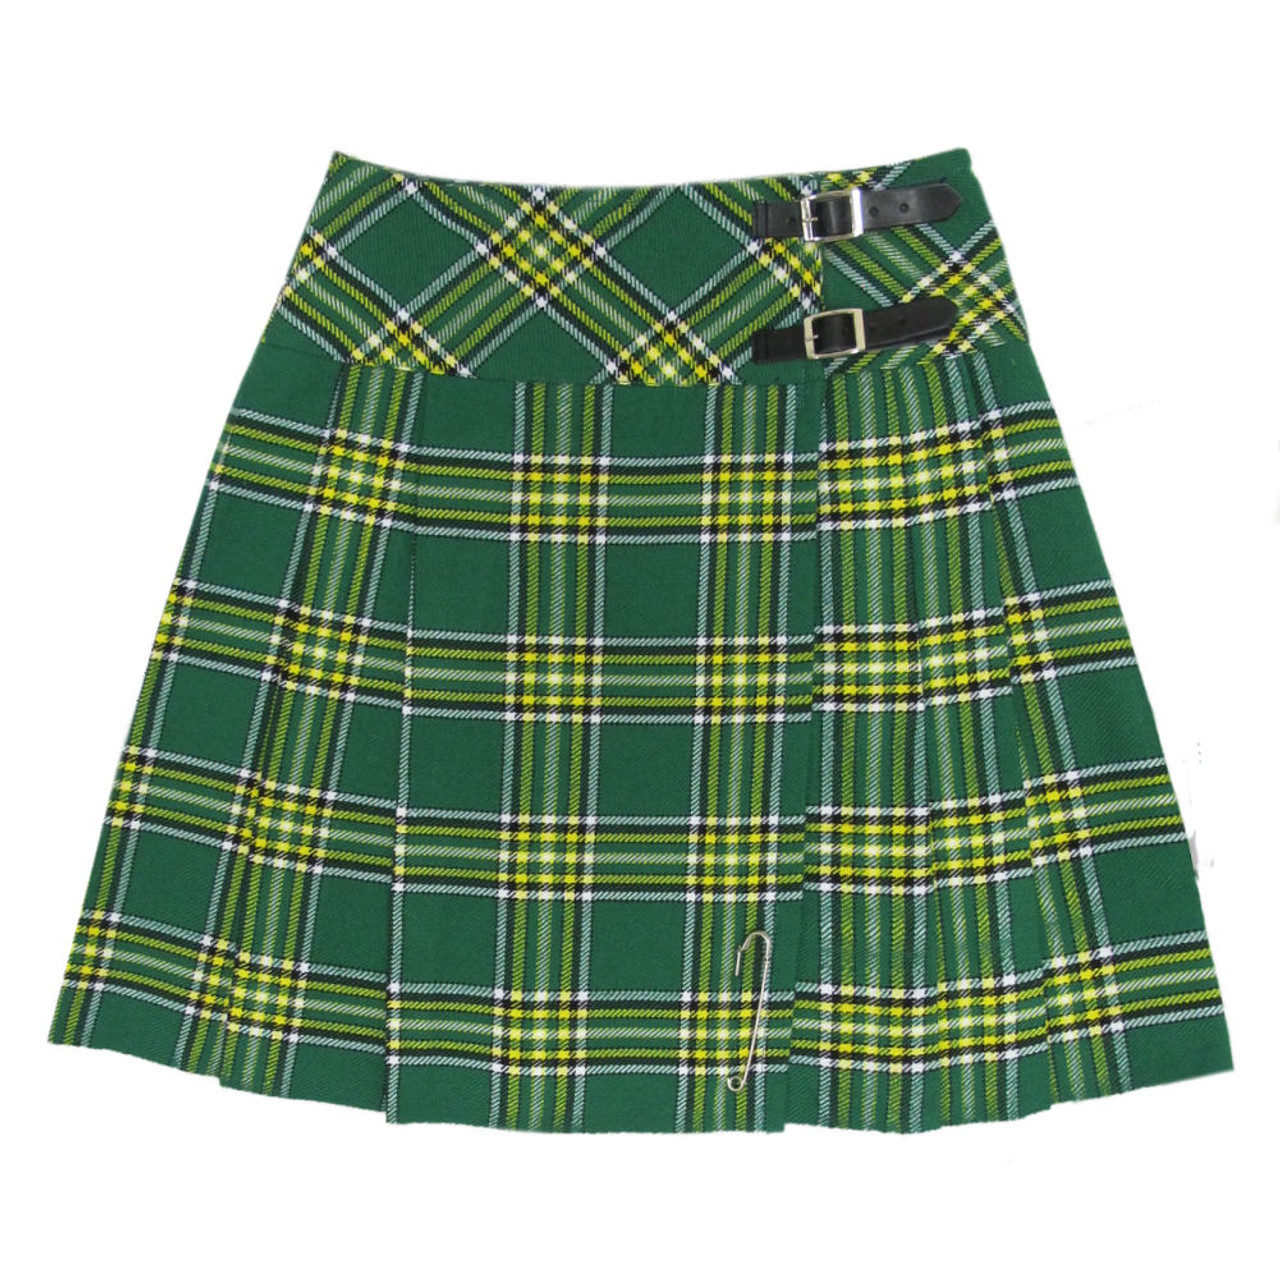 "Ladies Knee Length Black Kilt Skirt 20/"" Length Tartan Pleated"